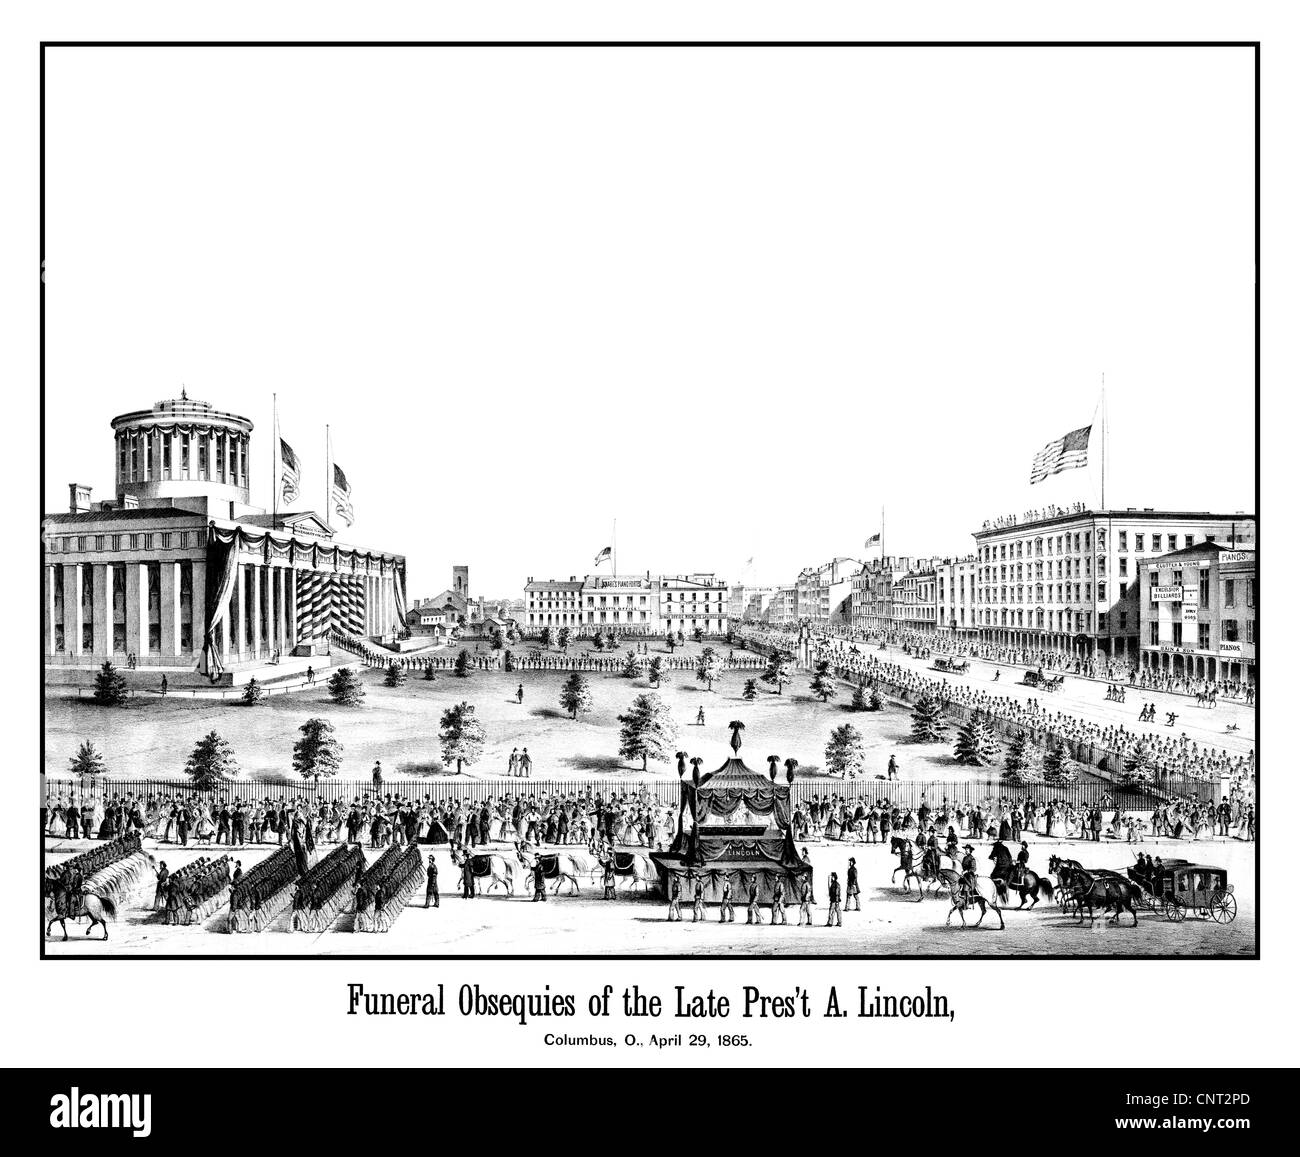 Digitallly restored vintage Civil War era print showing the funeral procession of President Lincoln. - Stock Image